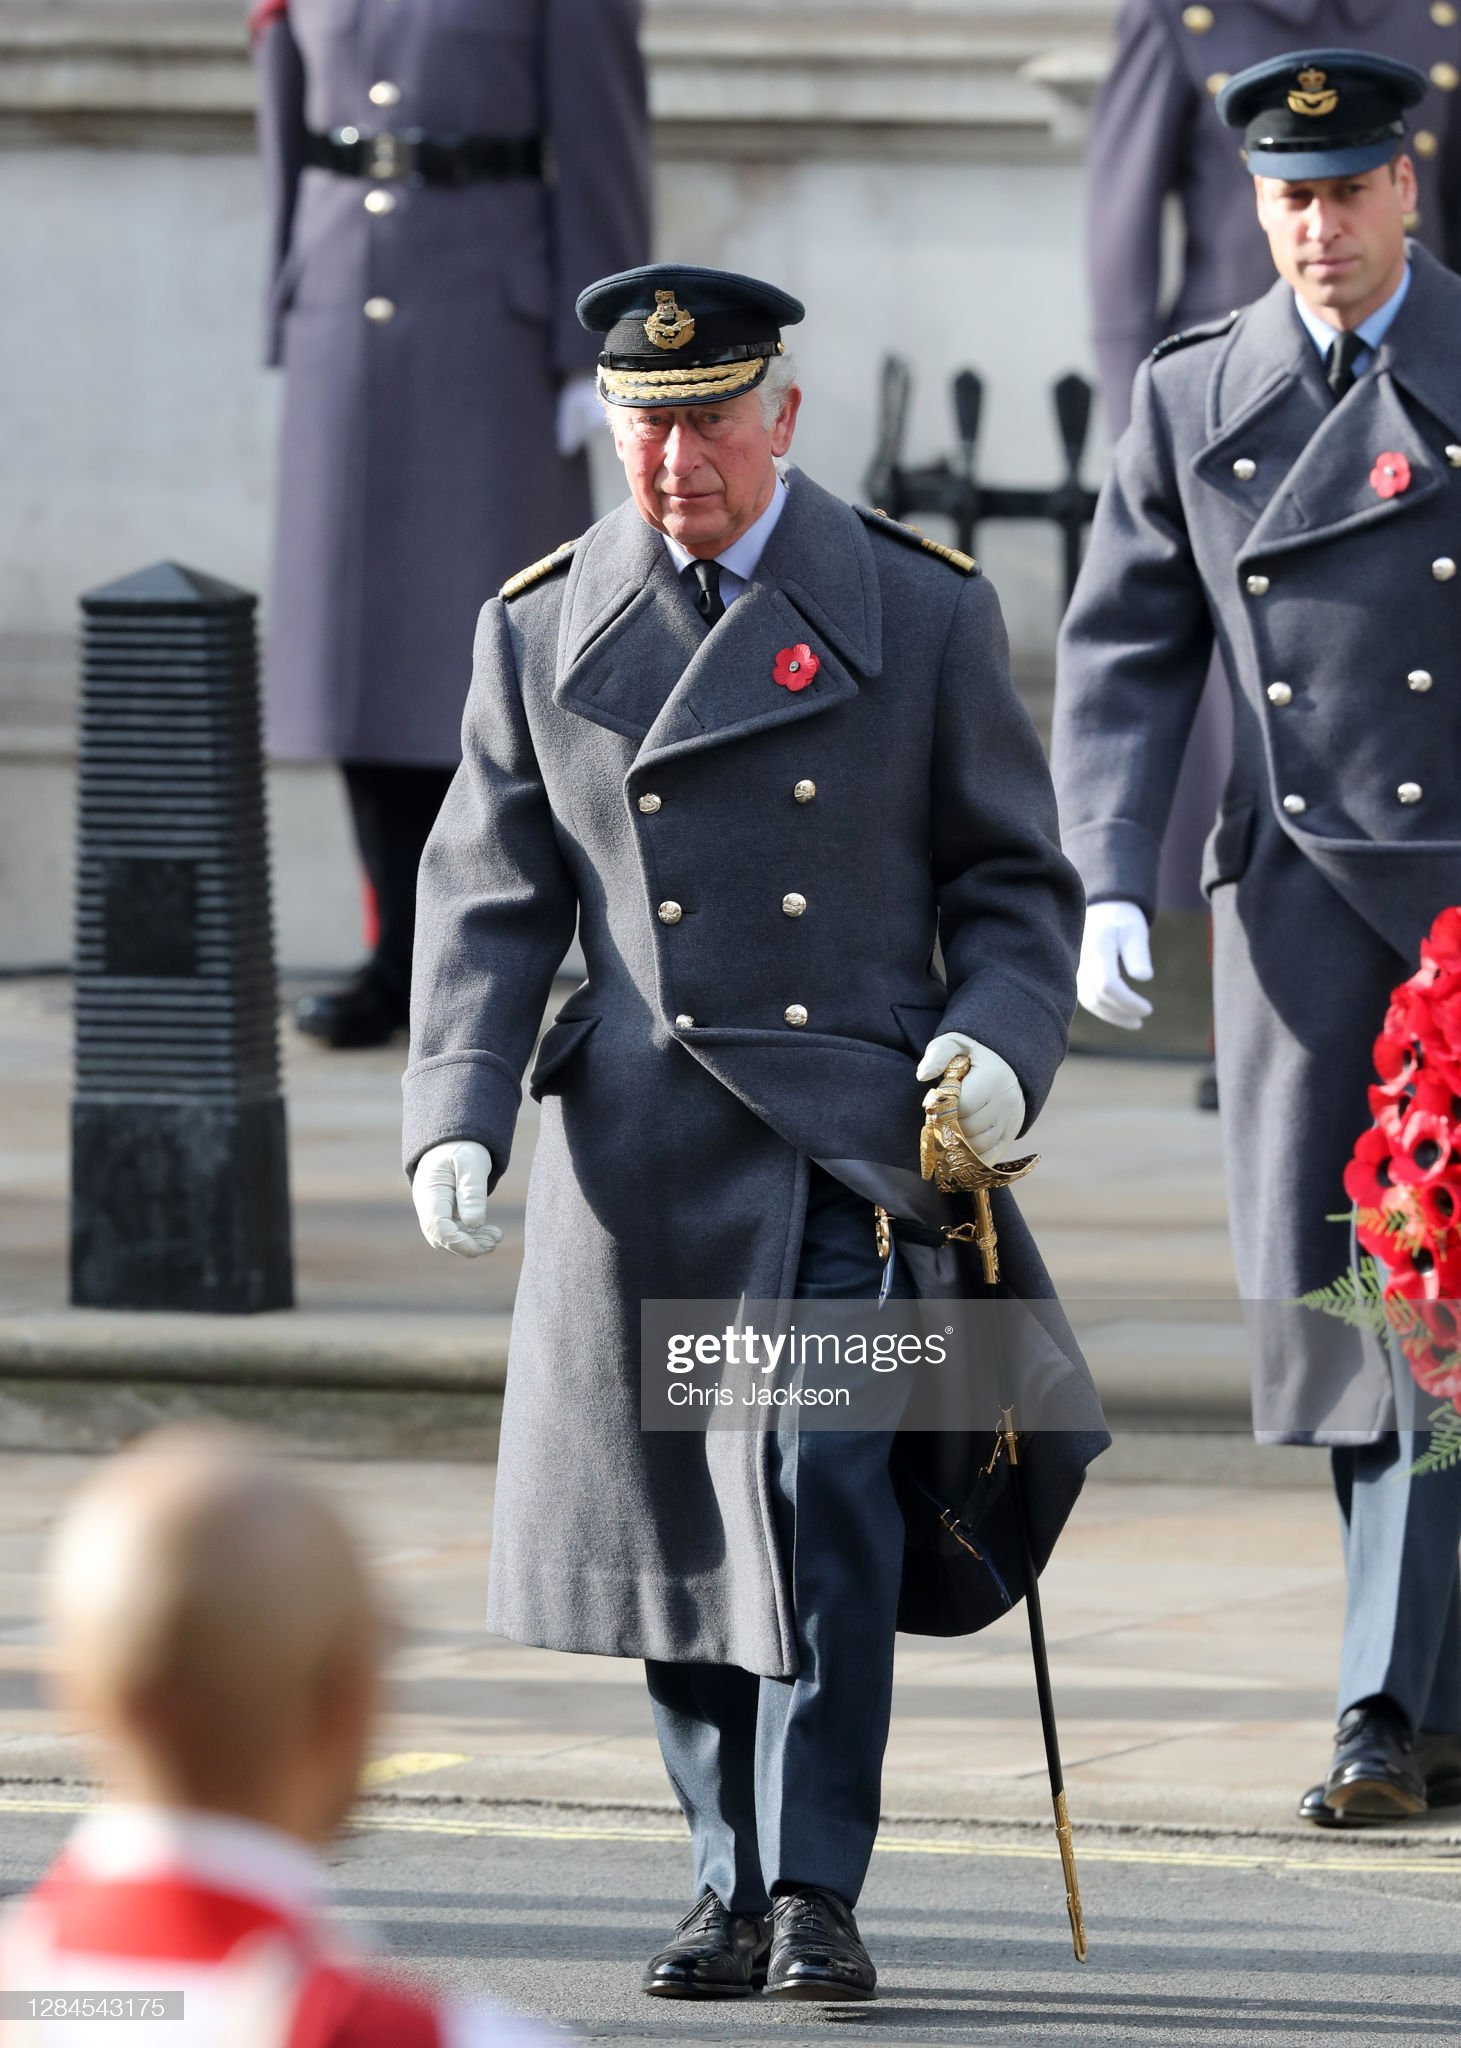 https://media.gettyimages.com/photos/prince-charles-prince-of-wales-and-prince-william-duke-of-cambridge-picture-id1284543175?s=2048x2048